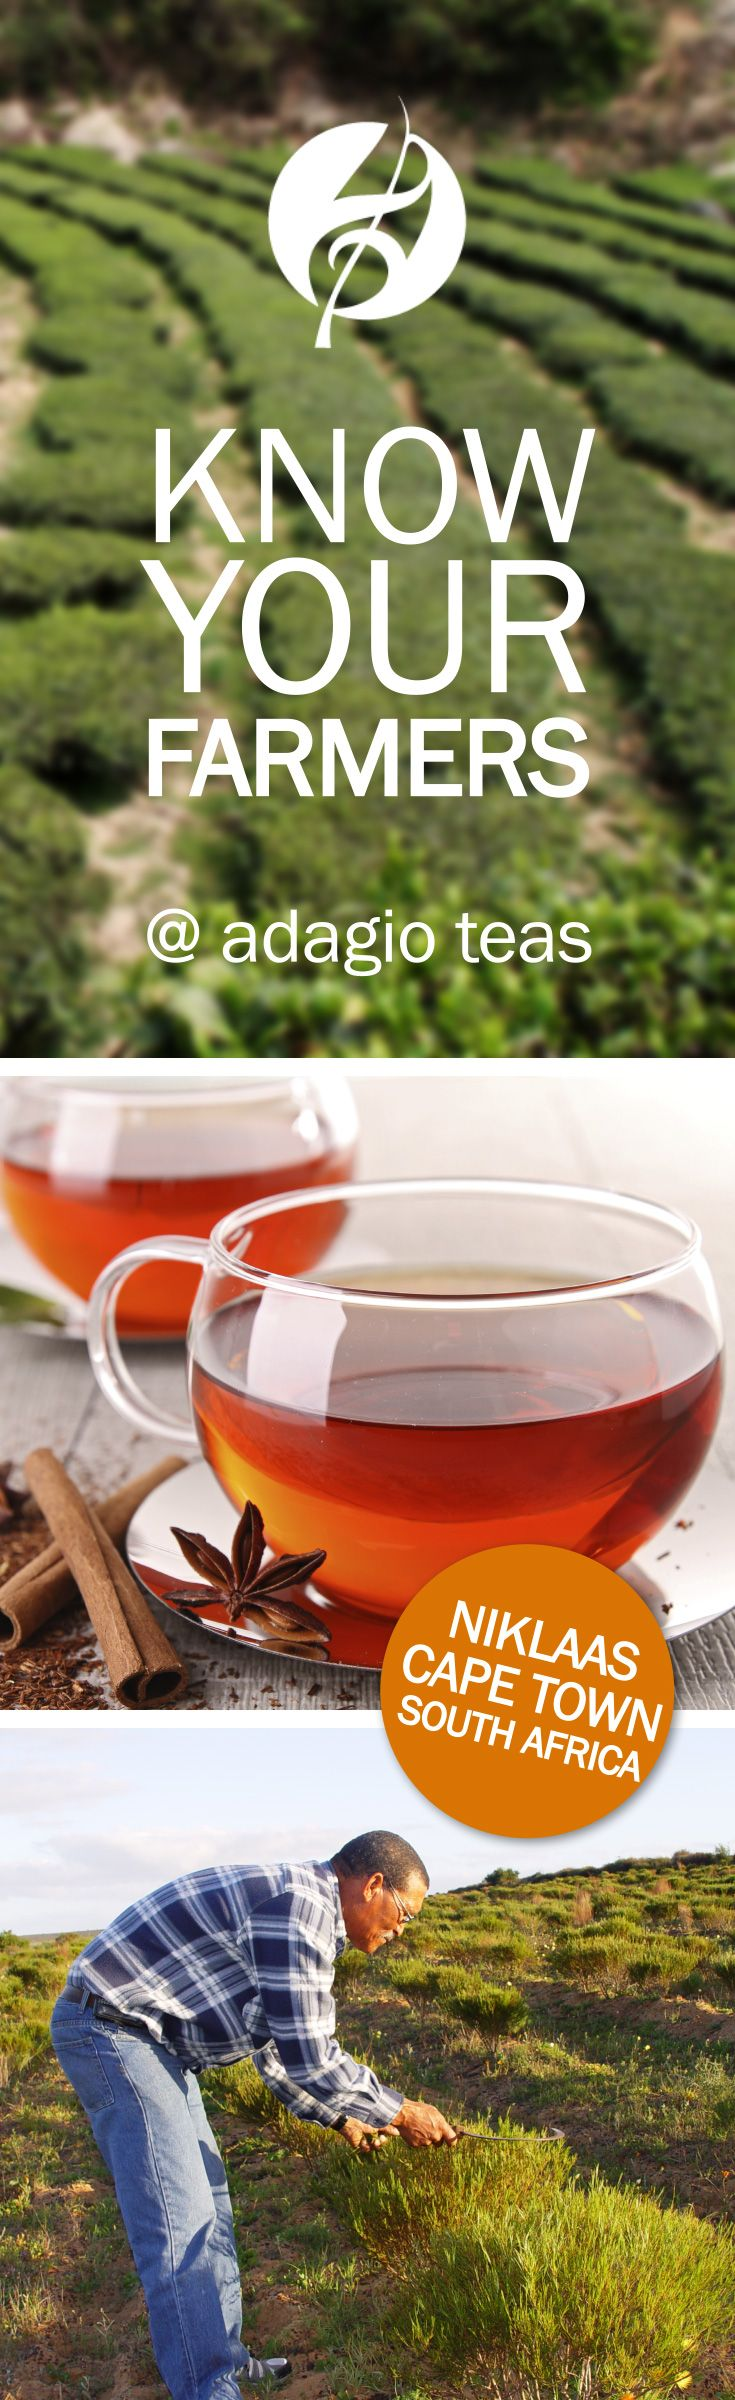 Chinese herbs tea stress anxiety - Rooibos Made From The South African Redbush Tree Makes For A Healthful Herbal Tisane